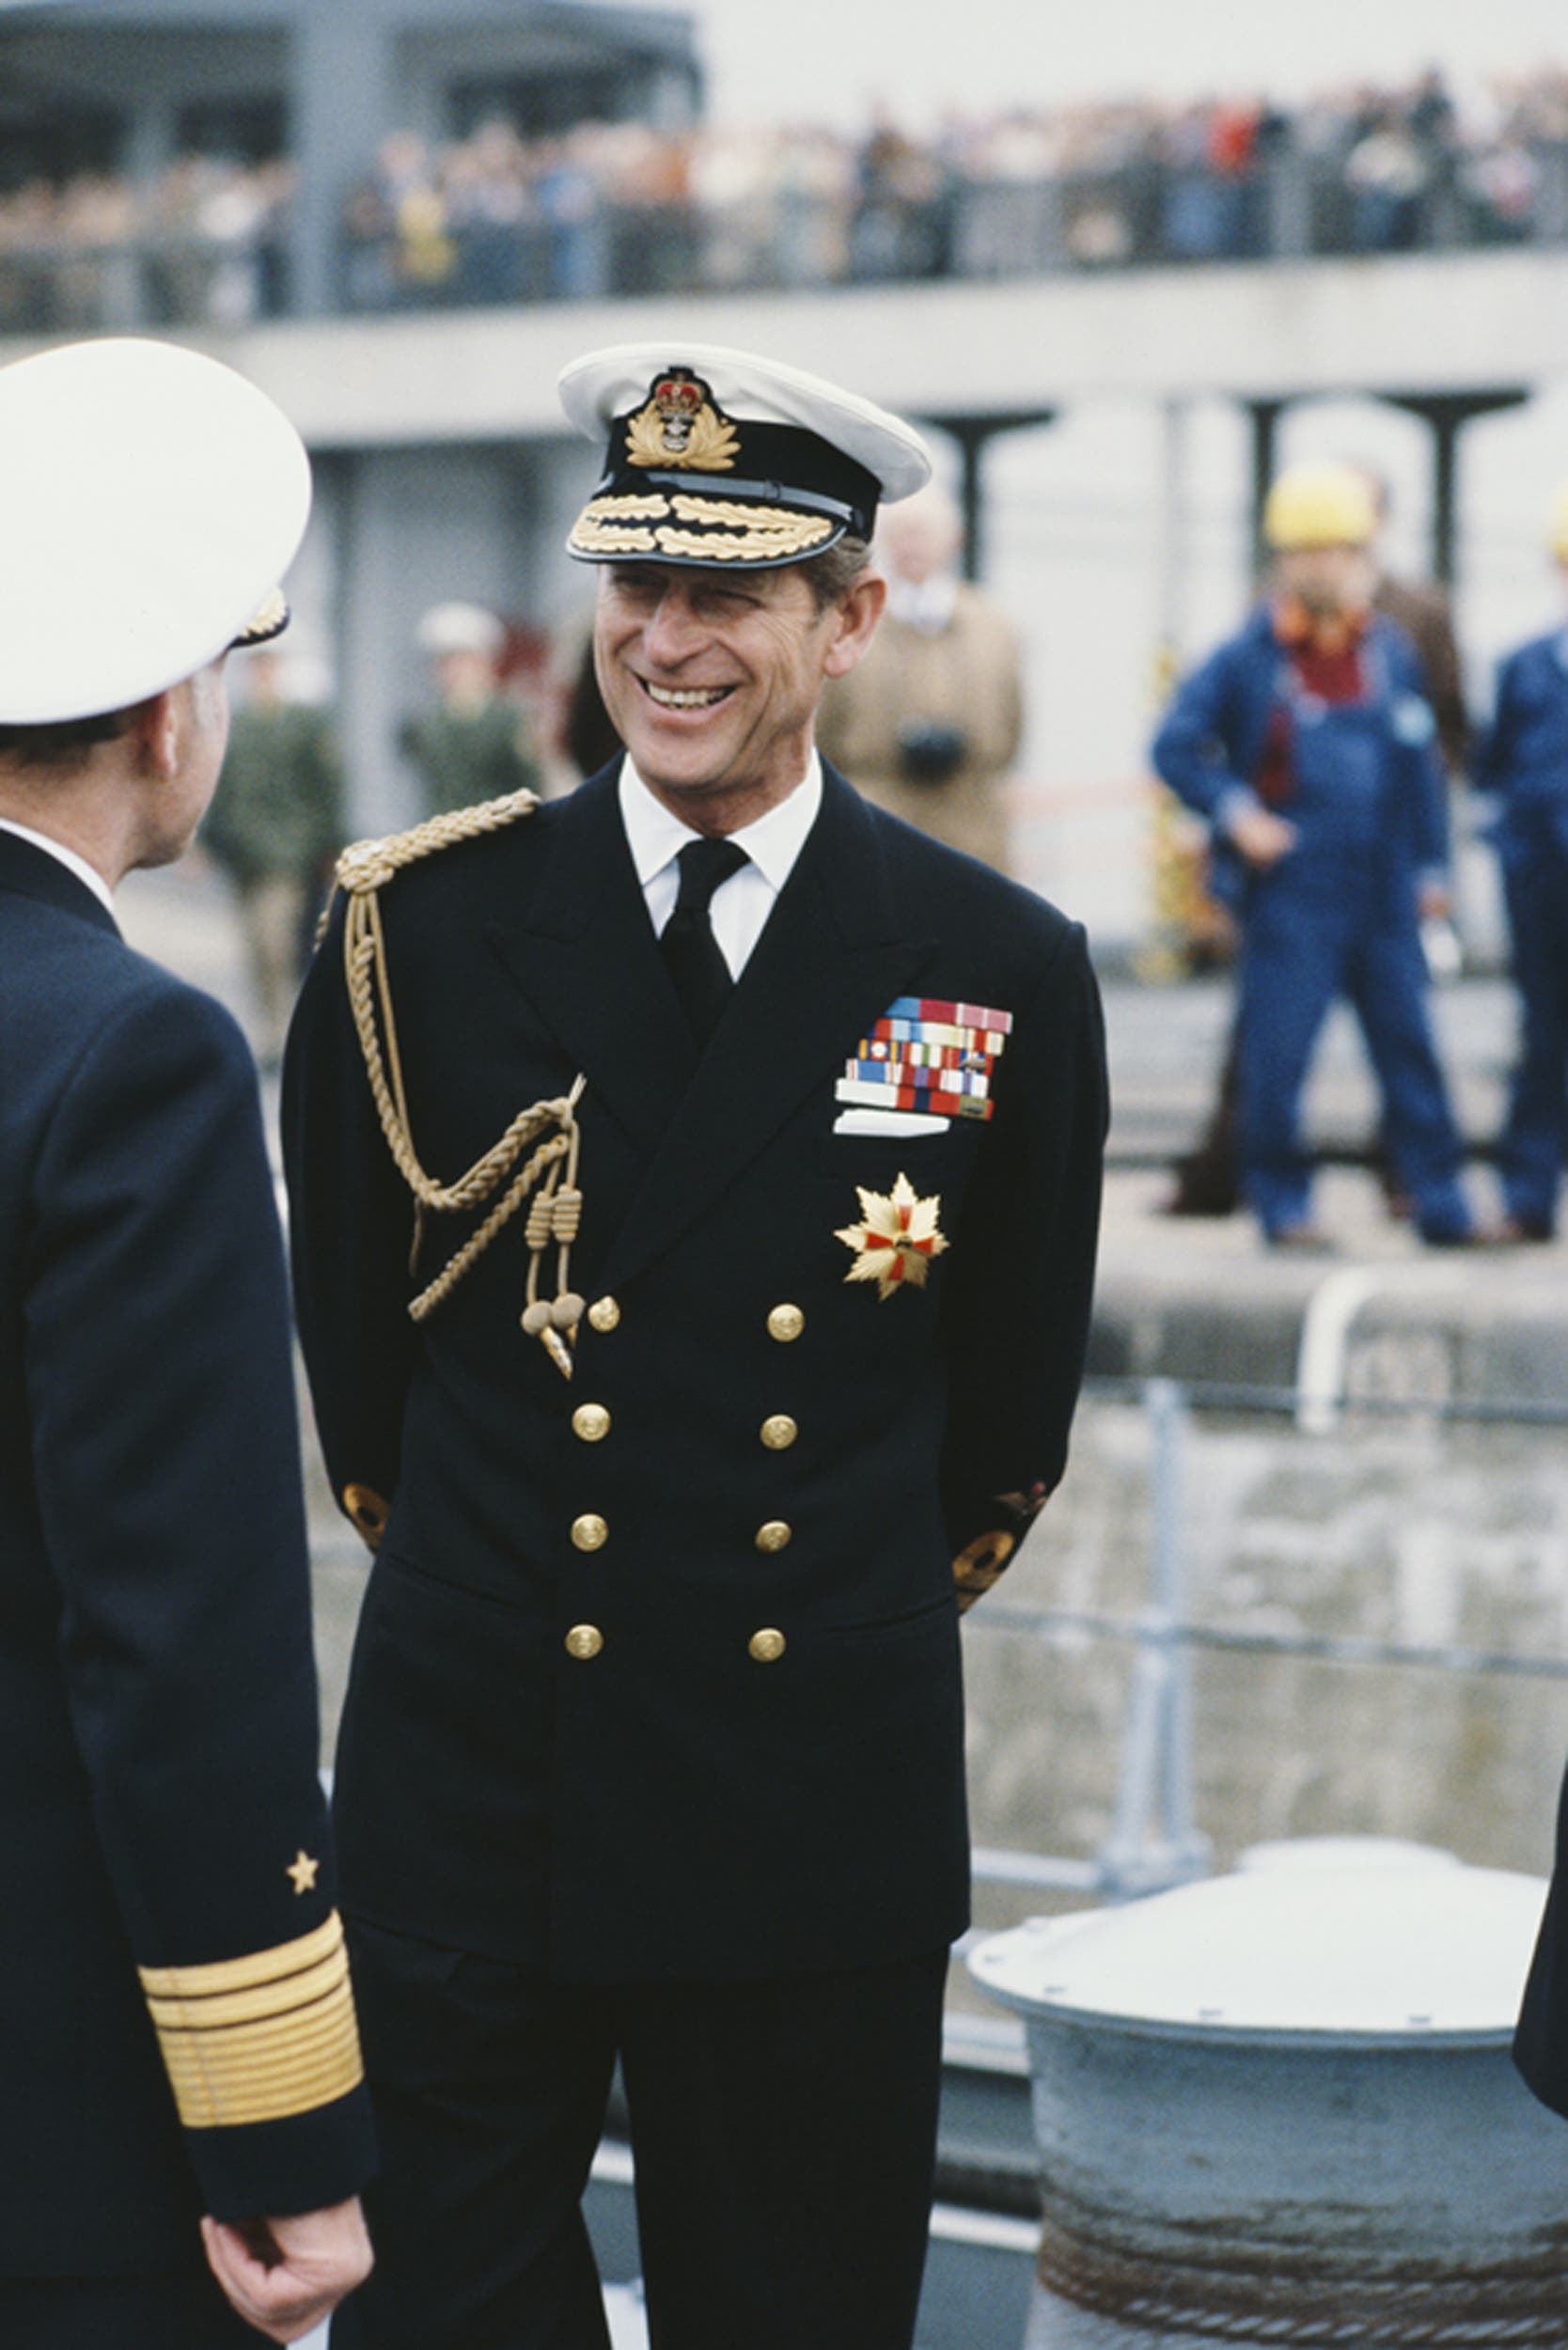 Sewing house Gieves & Hawkes was in charge of Prince Philip's navy uniform (here on a state visit to Bremerhaven in 1978).  Image credit: Getty Images